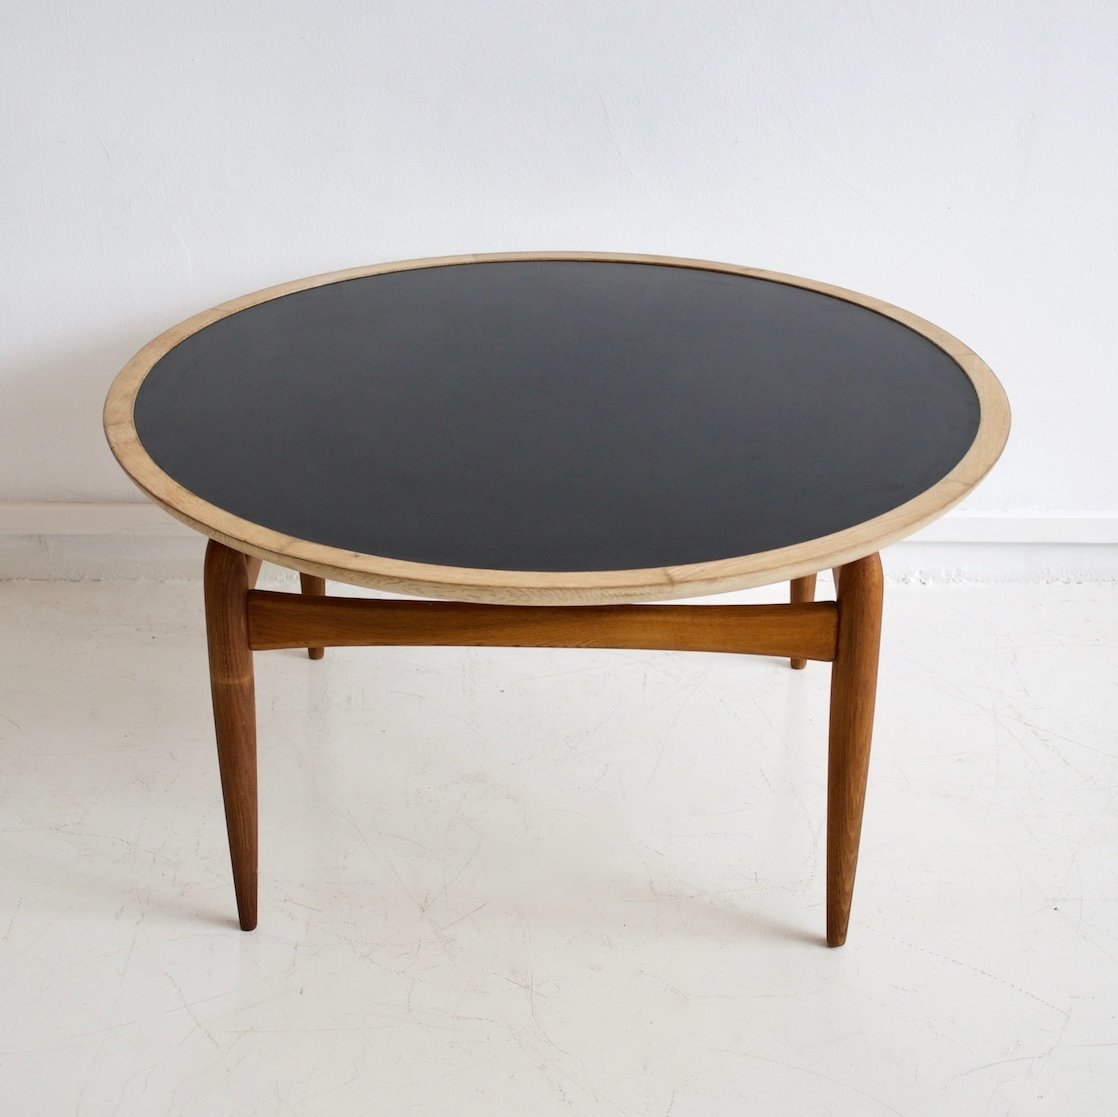 Black Oak Round Coffee Table: Round Oak & Black Formica Coffee Table By Ludvig